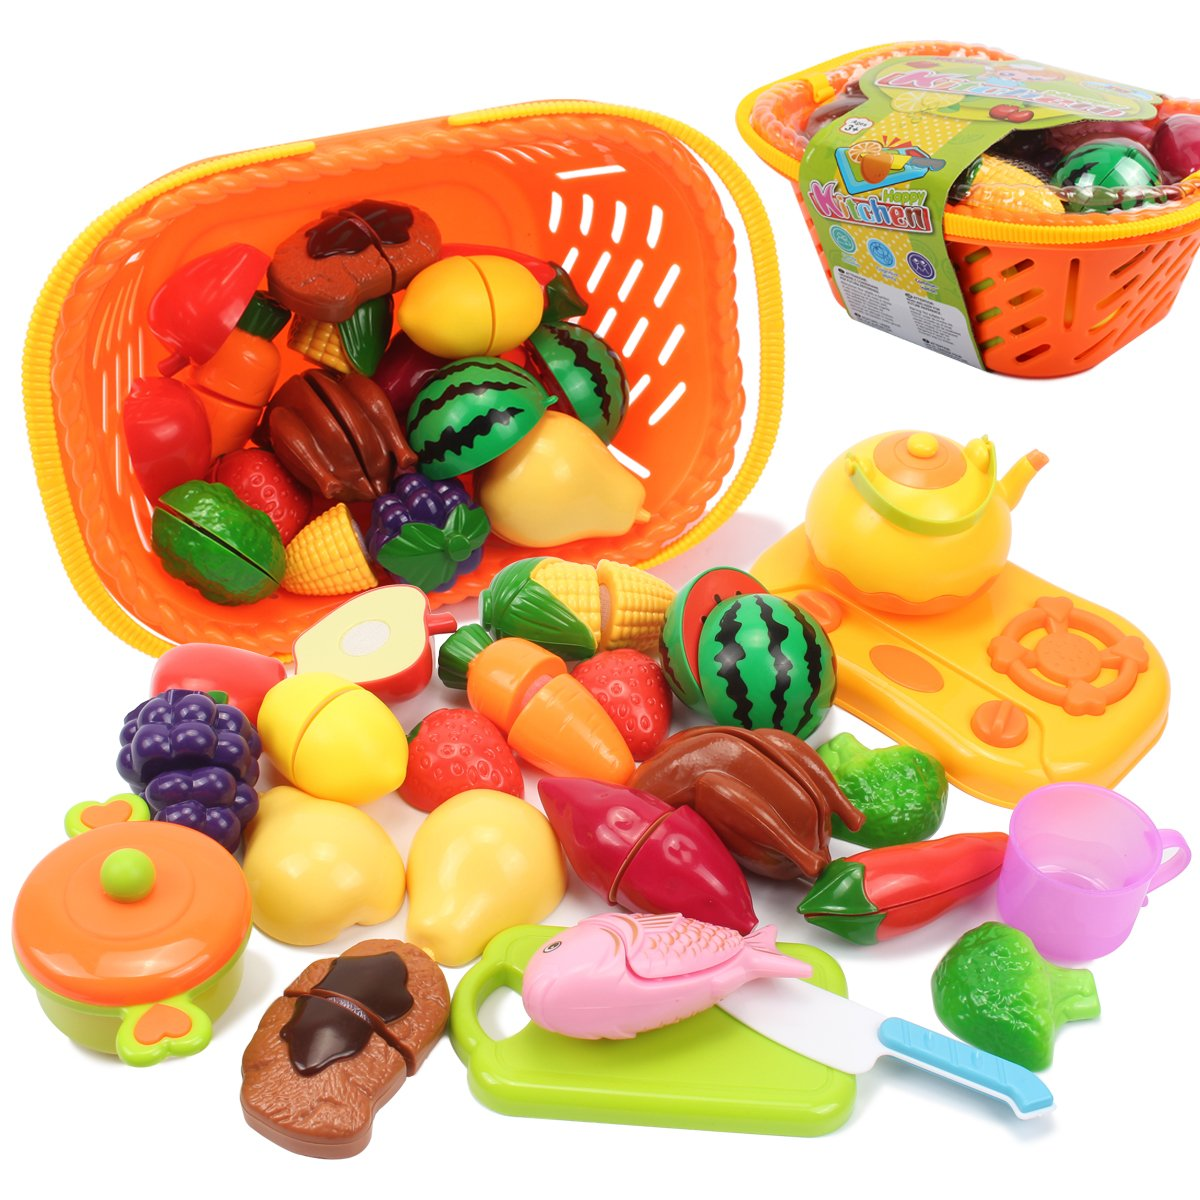 AMOSTING Kids Pretend Food Play Kitchen Toys for Kids, Plastic Food Fruit Cutting Set for Kids Play Kitchen Set, 20 Piece Play Food for Kids Kitchen Play Food Early Educational Toys